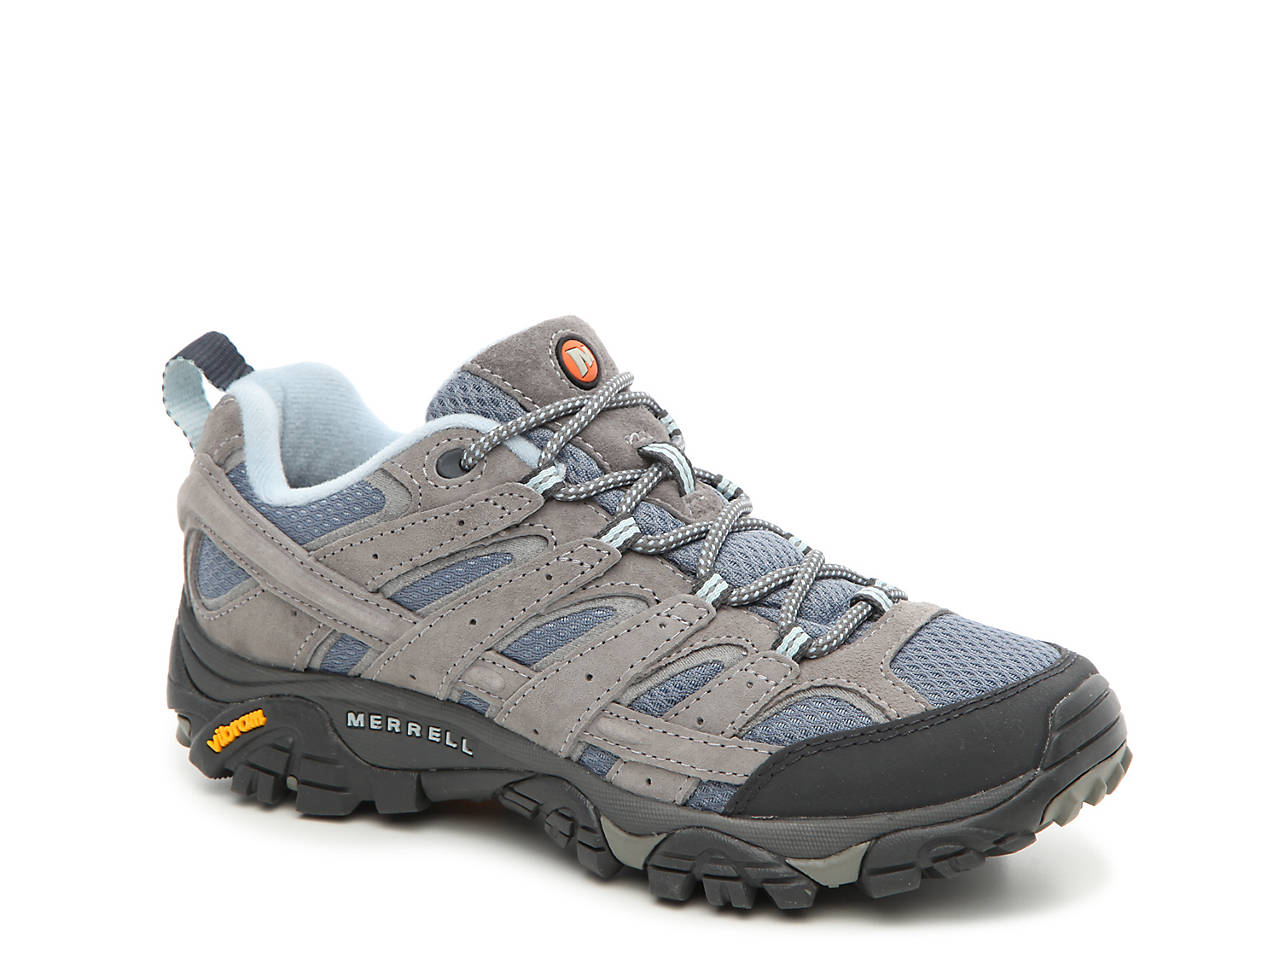 d7571968a45 Merrell Moab 2 Vent Hiking Shoe Women's Shoes | DSW